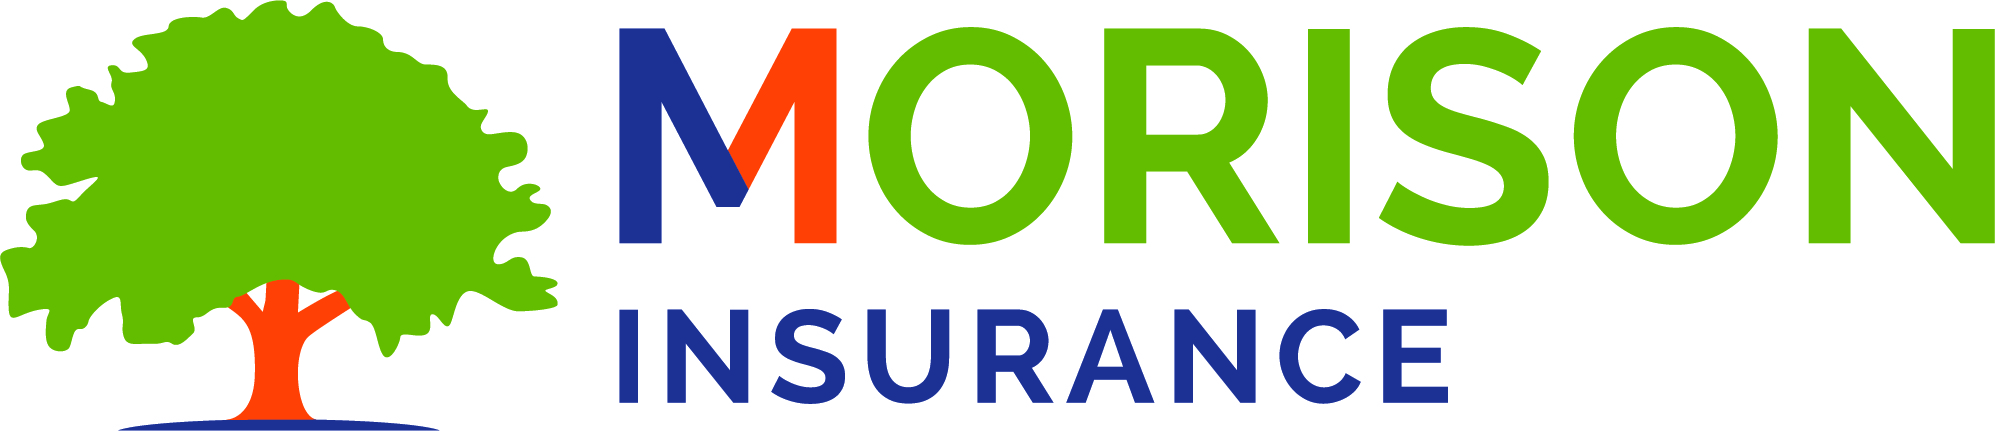 Morison Insurance Brokers Inc. logo